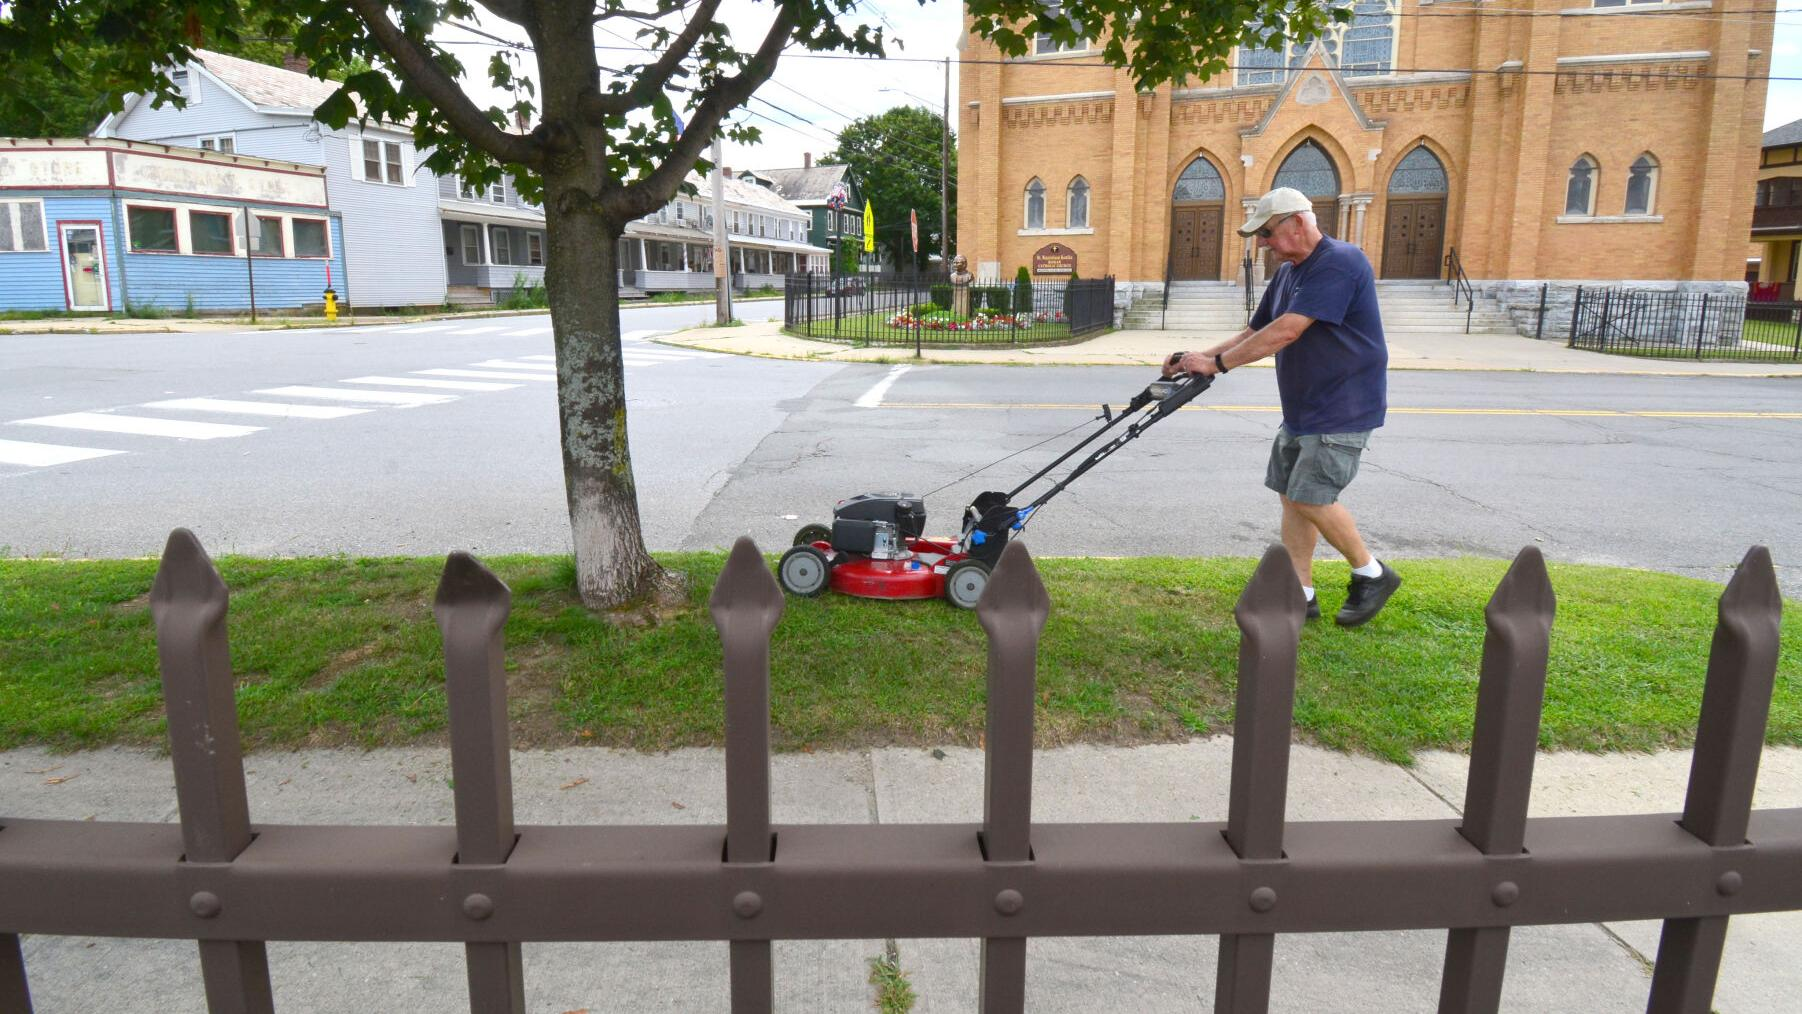 Ron Kujawski: Already itching to mow? You better measure your grass first ...